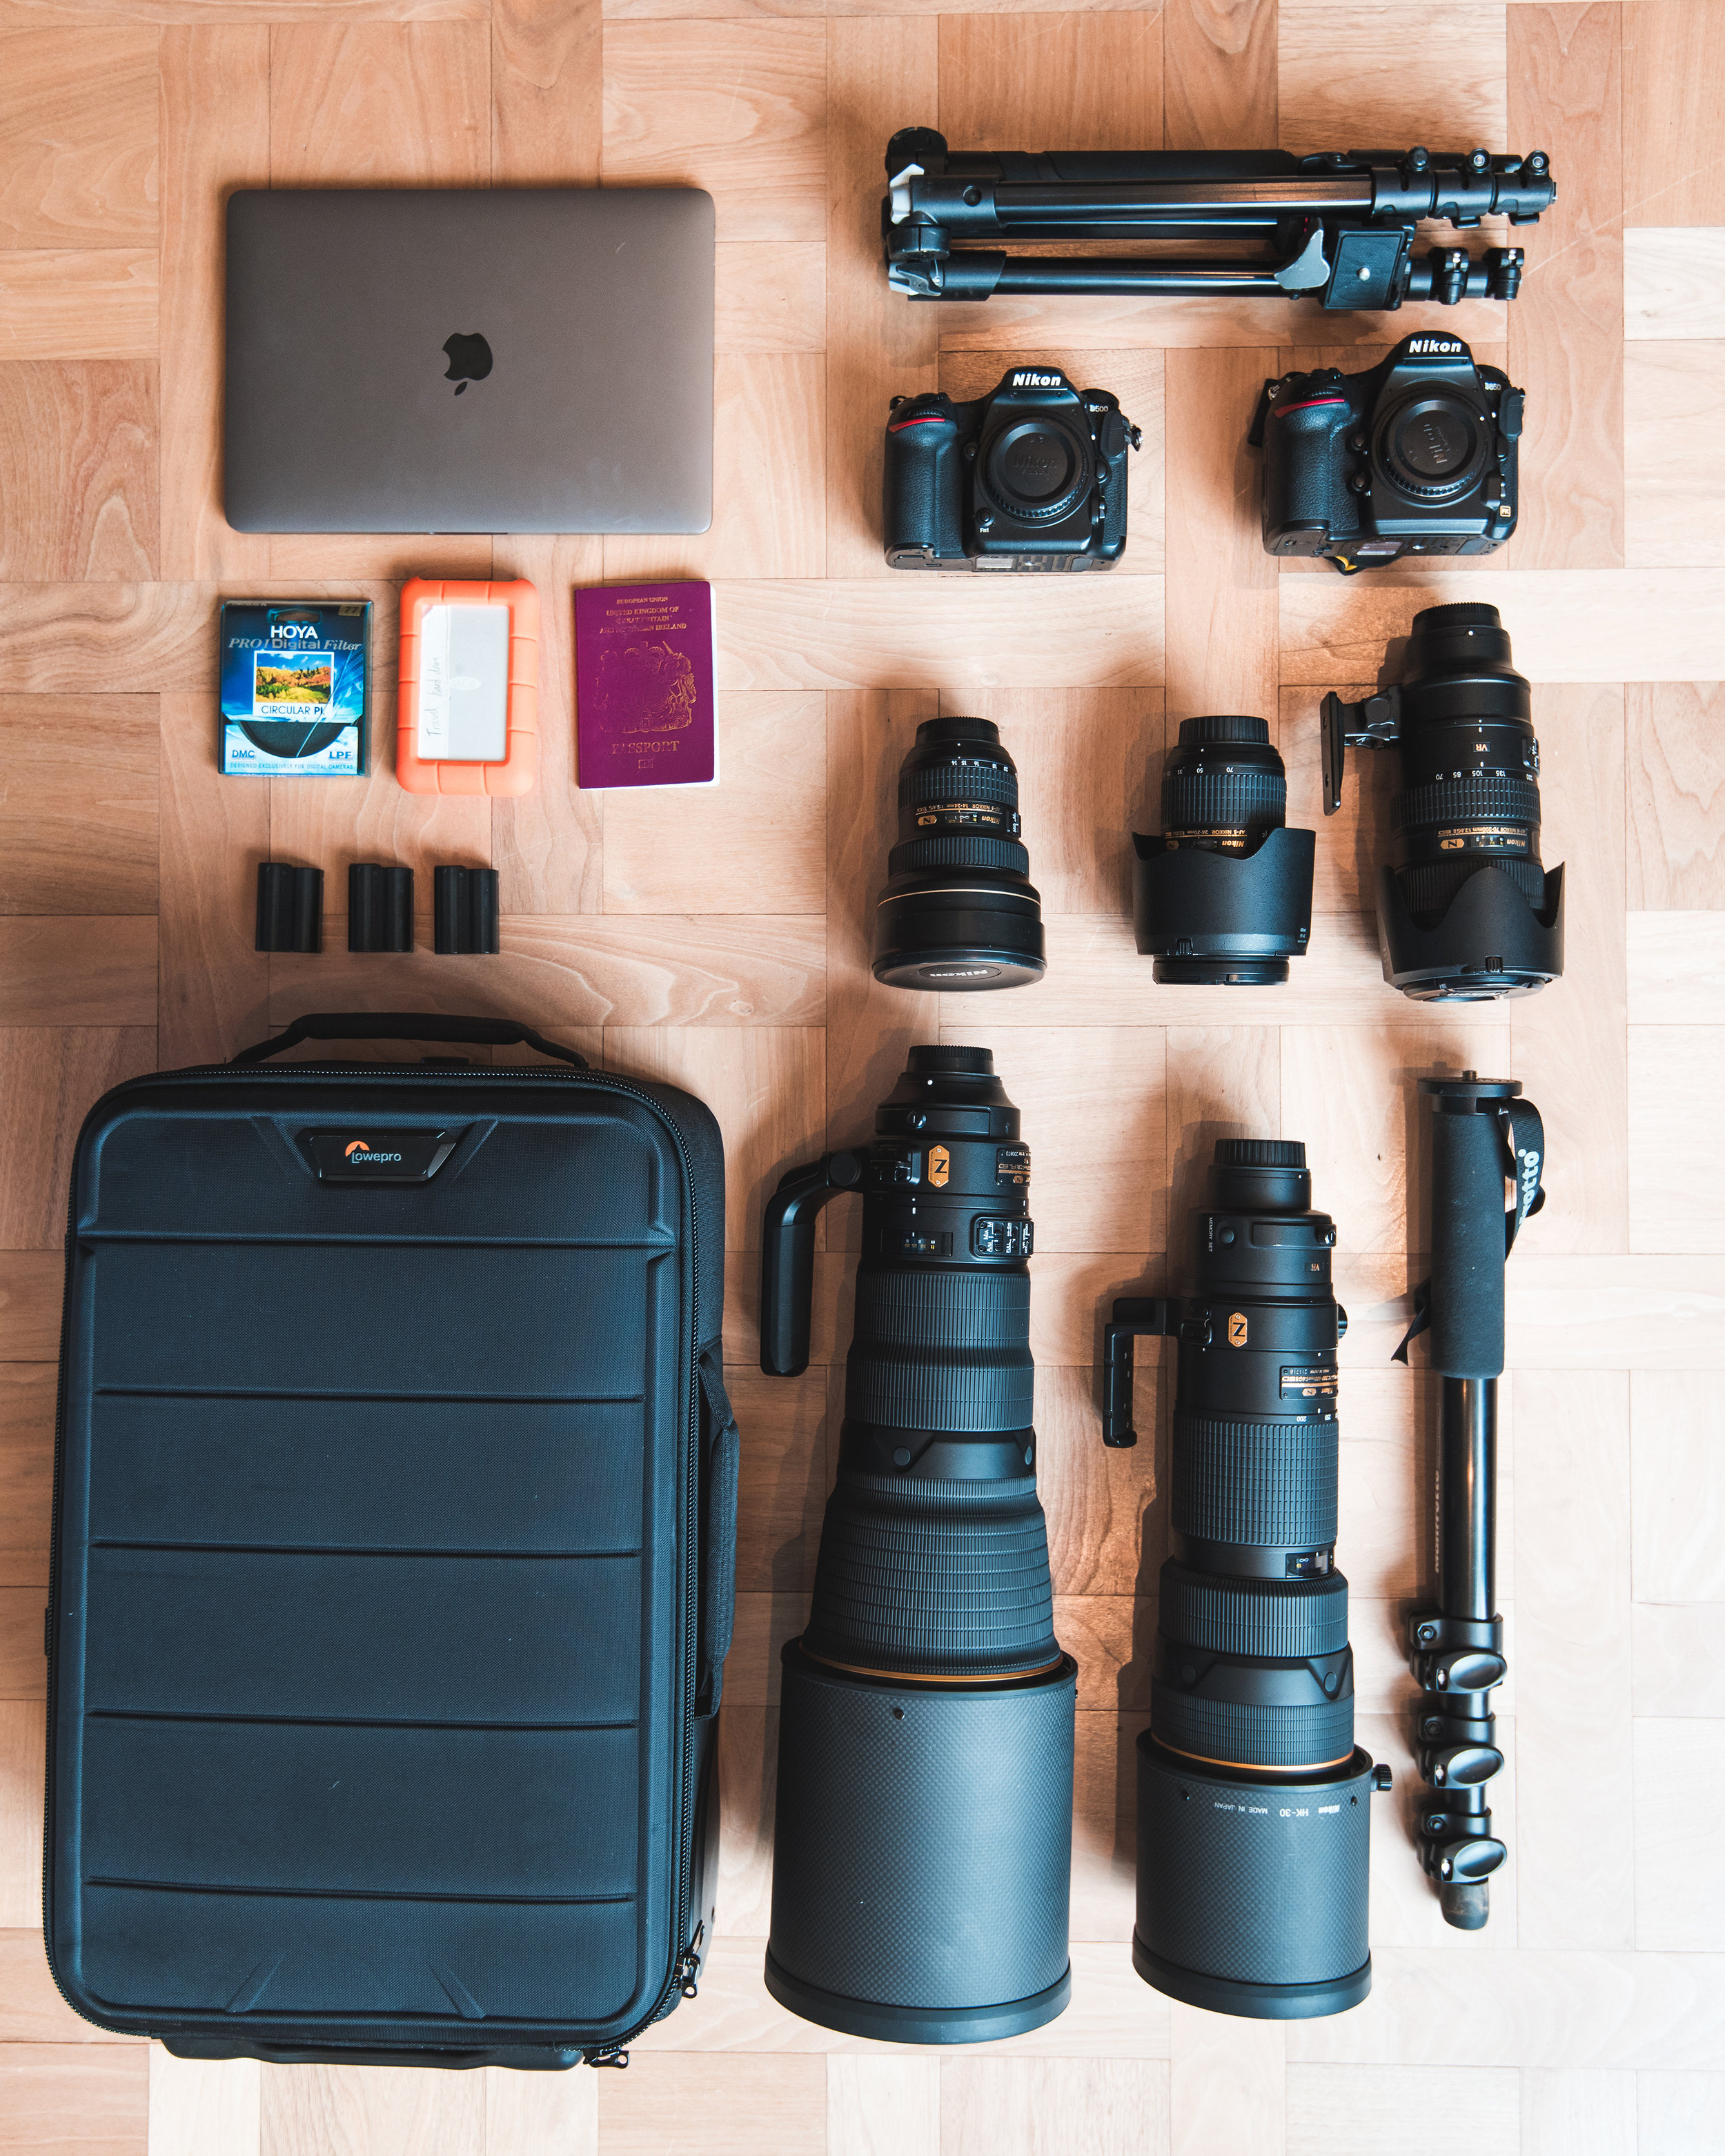 - Once I've compiled all the kit I want to take, I need to consider how to transport it all.I've struggled with camera bags over the years, mostly because I find them uncomfortable on my back which, after 50+ flights a year, hikes and general travel really starts to kill me!When I fly, I always use a roller case. I use the Lowe pro 150, which I love! With loads of room for multiple bodies, lenses and a laptop, it's practical, accessible and provides great protection. For general walking around and hiking I've been trying out a few different bags.